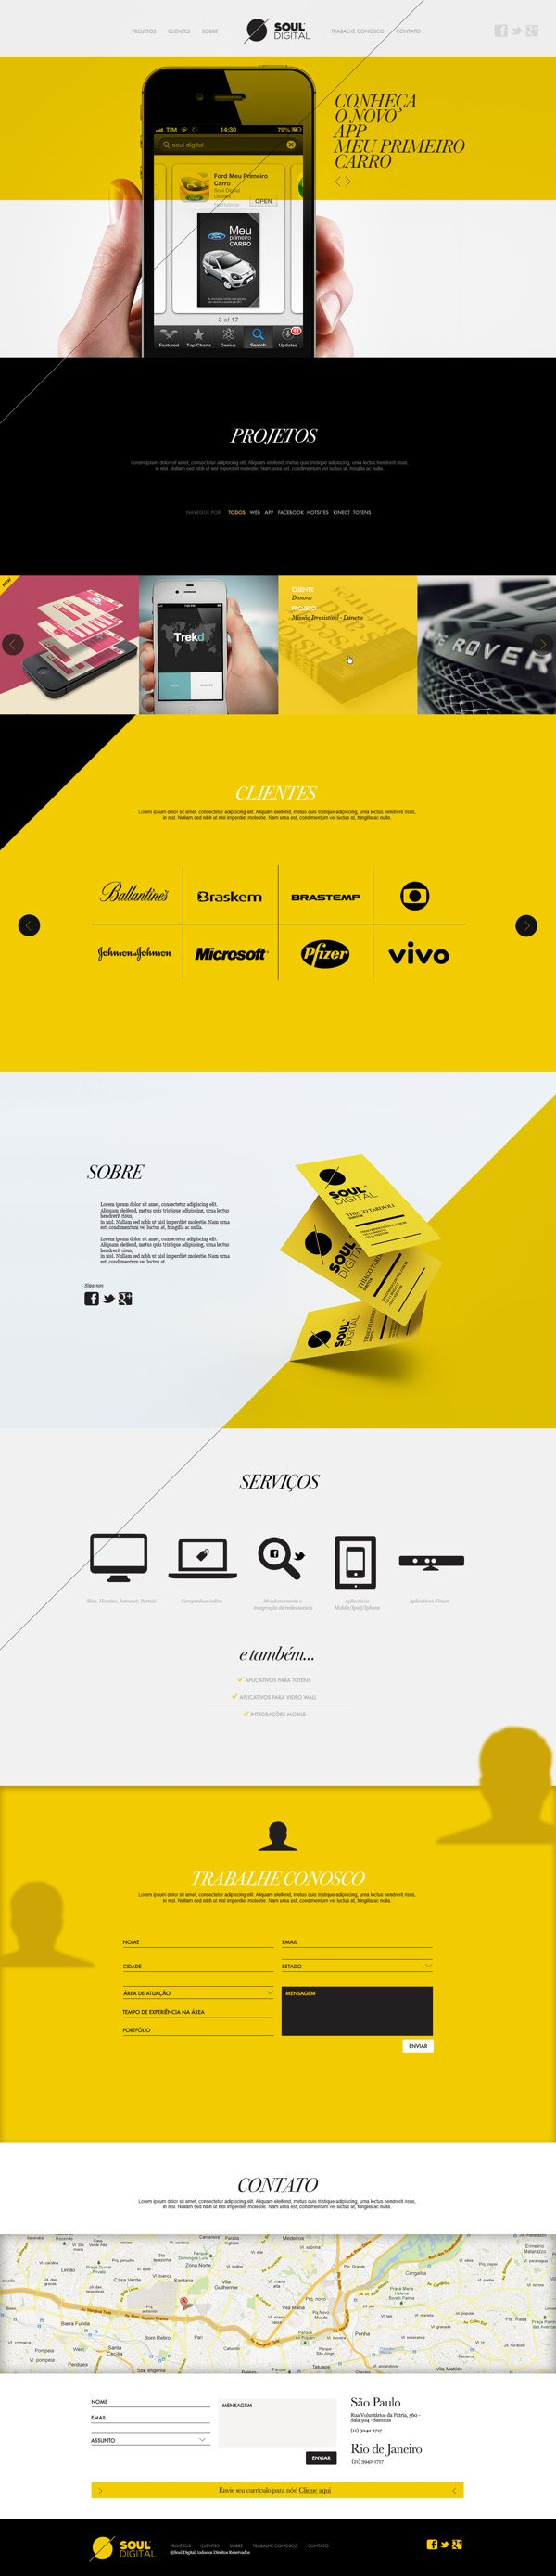 Soul Digital by Isabela Rodrigues, via Behance